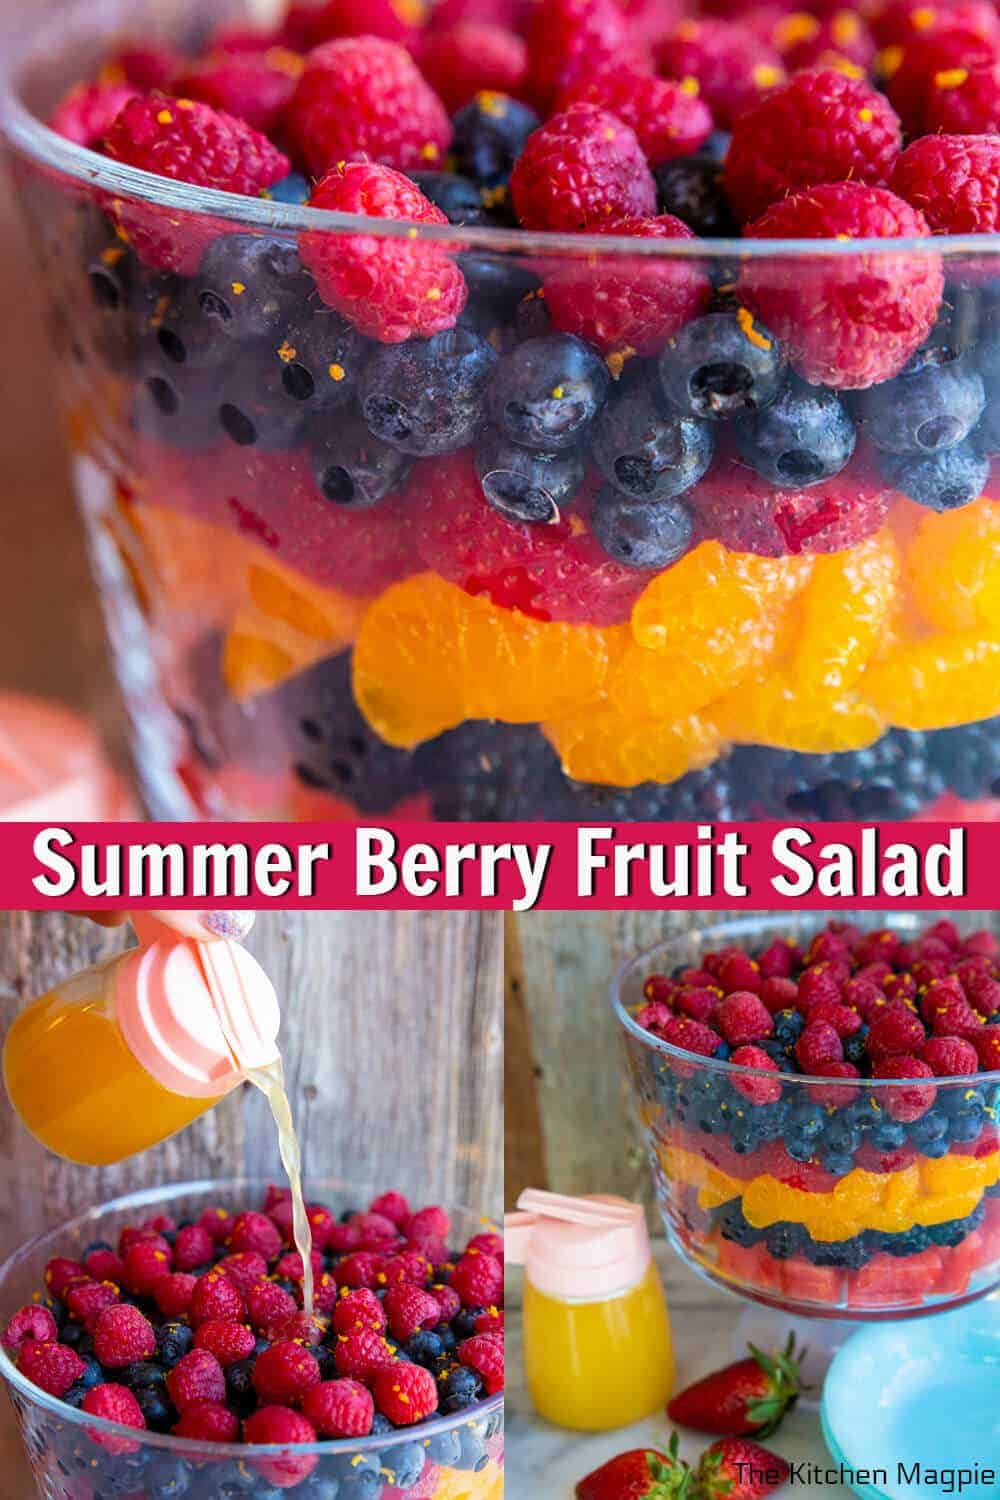 This summer fruit salad is so easy to customize with whatever fruit you have on hand and uses honey instead of sugar for the sweet citrus dressing. It will be a new family favorite!